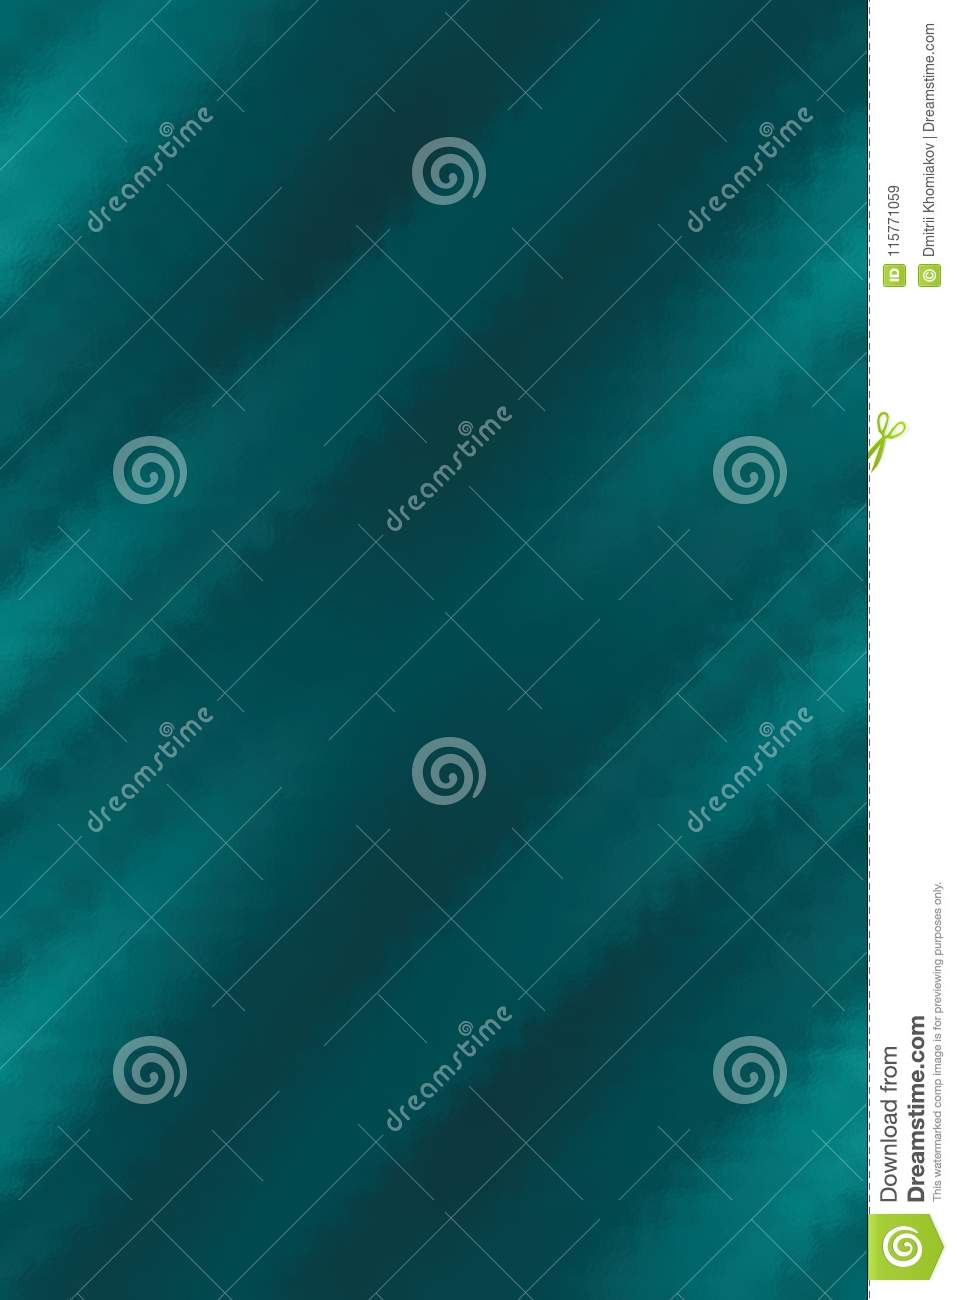 a1bdaa08ad3 Dark teal abstract glass texture background or wallpaper